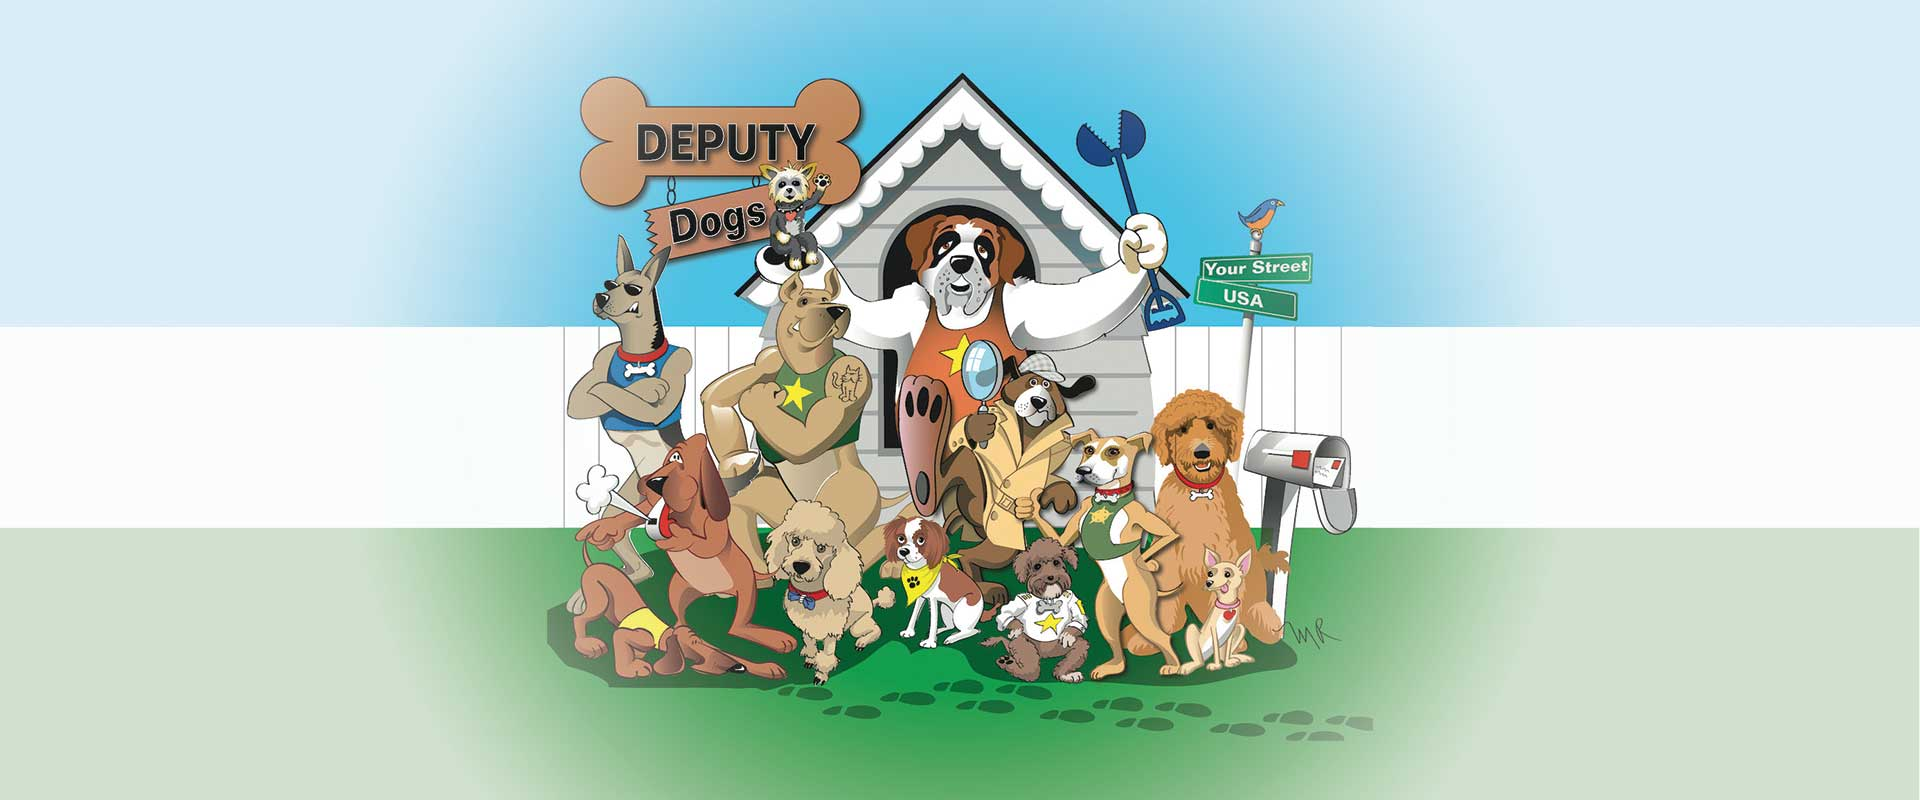 Illustration of Deputy Dogs